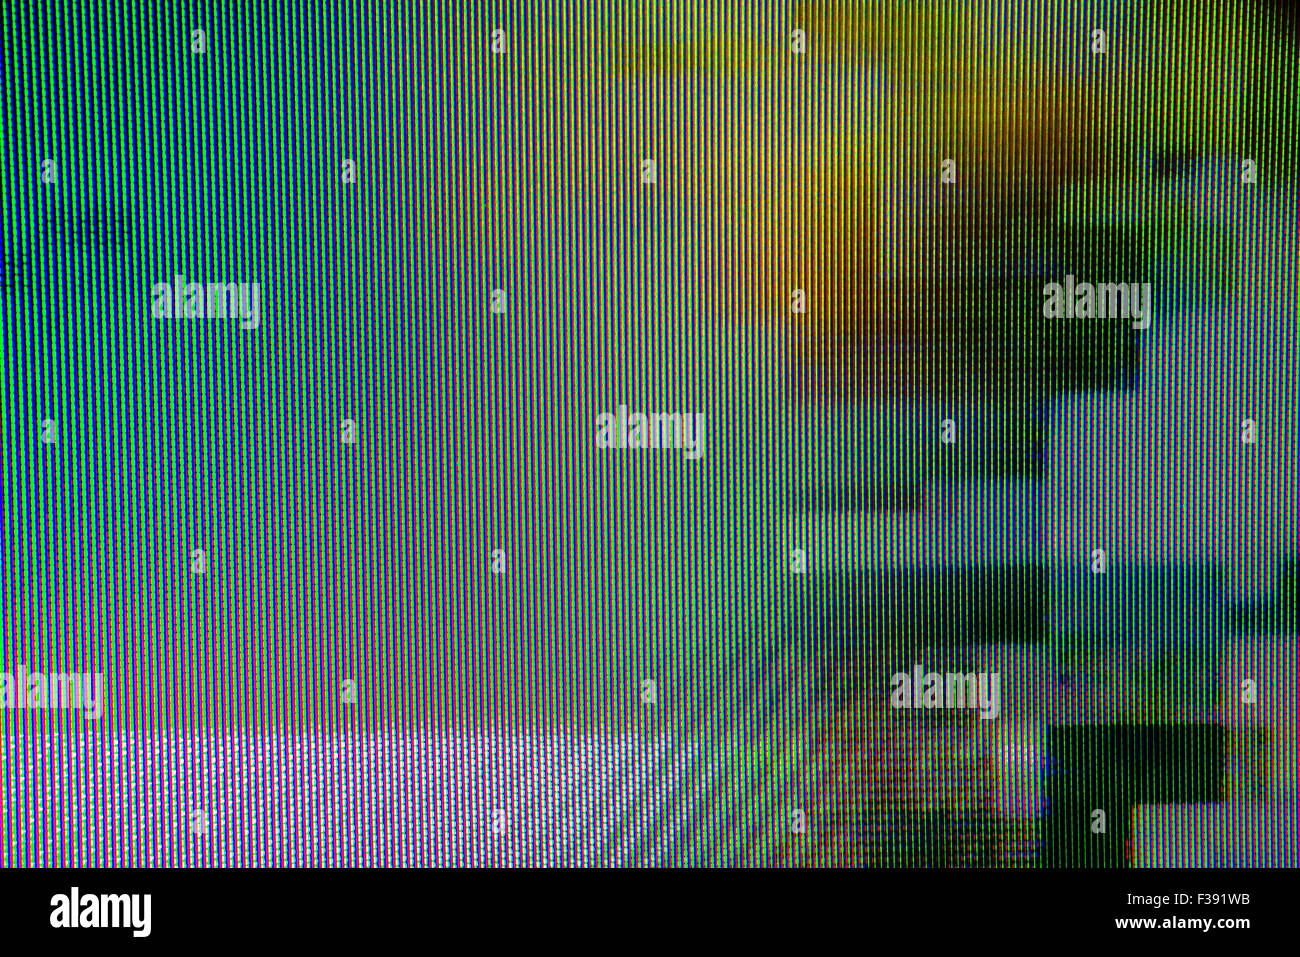 Digital TV broadcast glitch, television screen as technology background - Stock Image